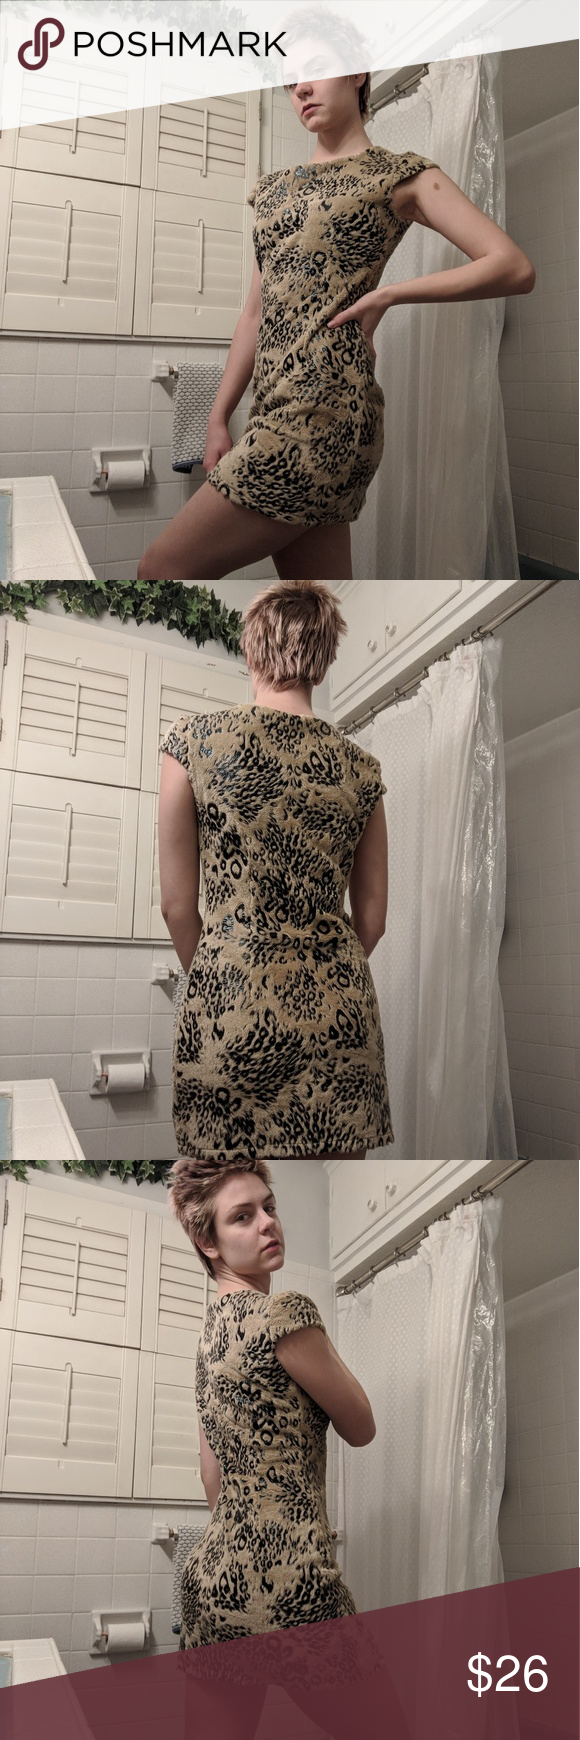 Custo Barcelona Made in Spain Cheetah Dress Custo Barcelona Made in Spain Dress. Gorgeous texture and shine. Fully lined. Size 1 (Spain) fits like a US 4 Custo Barcelona Dresses Mini #custobarcelona Custo Barcelona Made in Spain Cheetah Dress Custo Barcelona Made in Spain Dress. Gorgeous texture and shine. Fully lined. Size 1 (Spain) fits like a US 4 Custo Barcelona Dresses Mini #custobarcelona Custo Barcelona Made in Spain Cheetah Dress Custo Barcelona Made in Spain Dress. Gorgeous texture and #custobarcelona